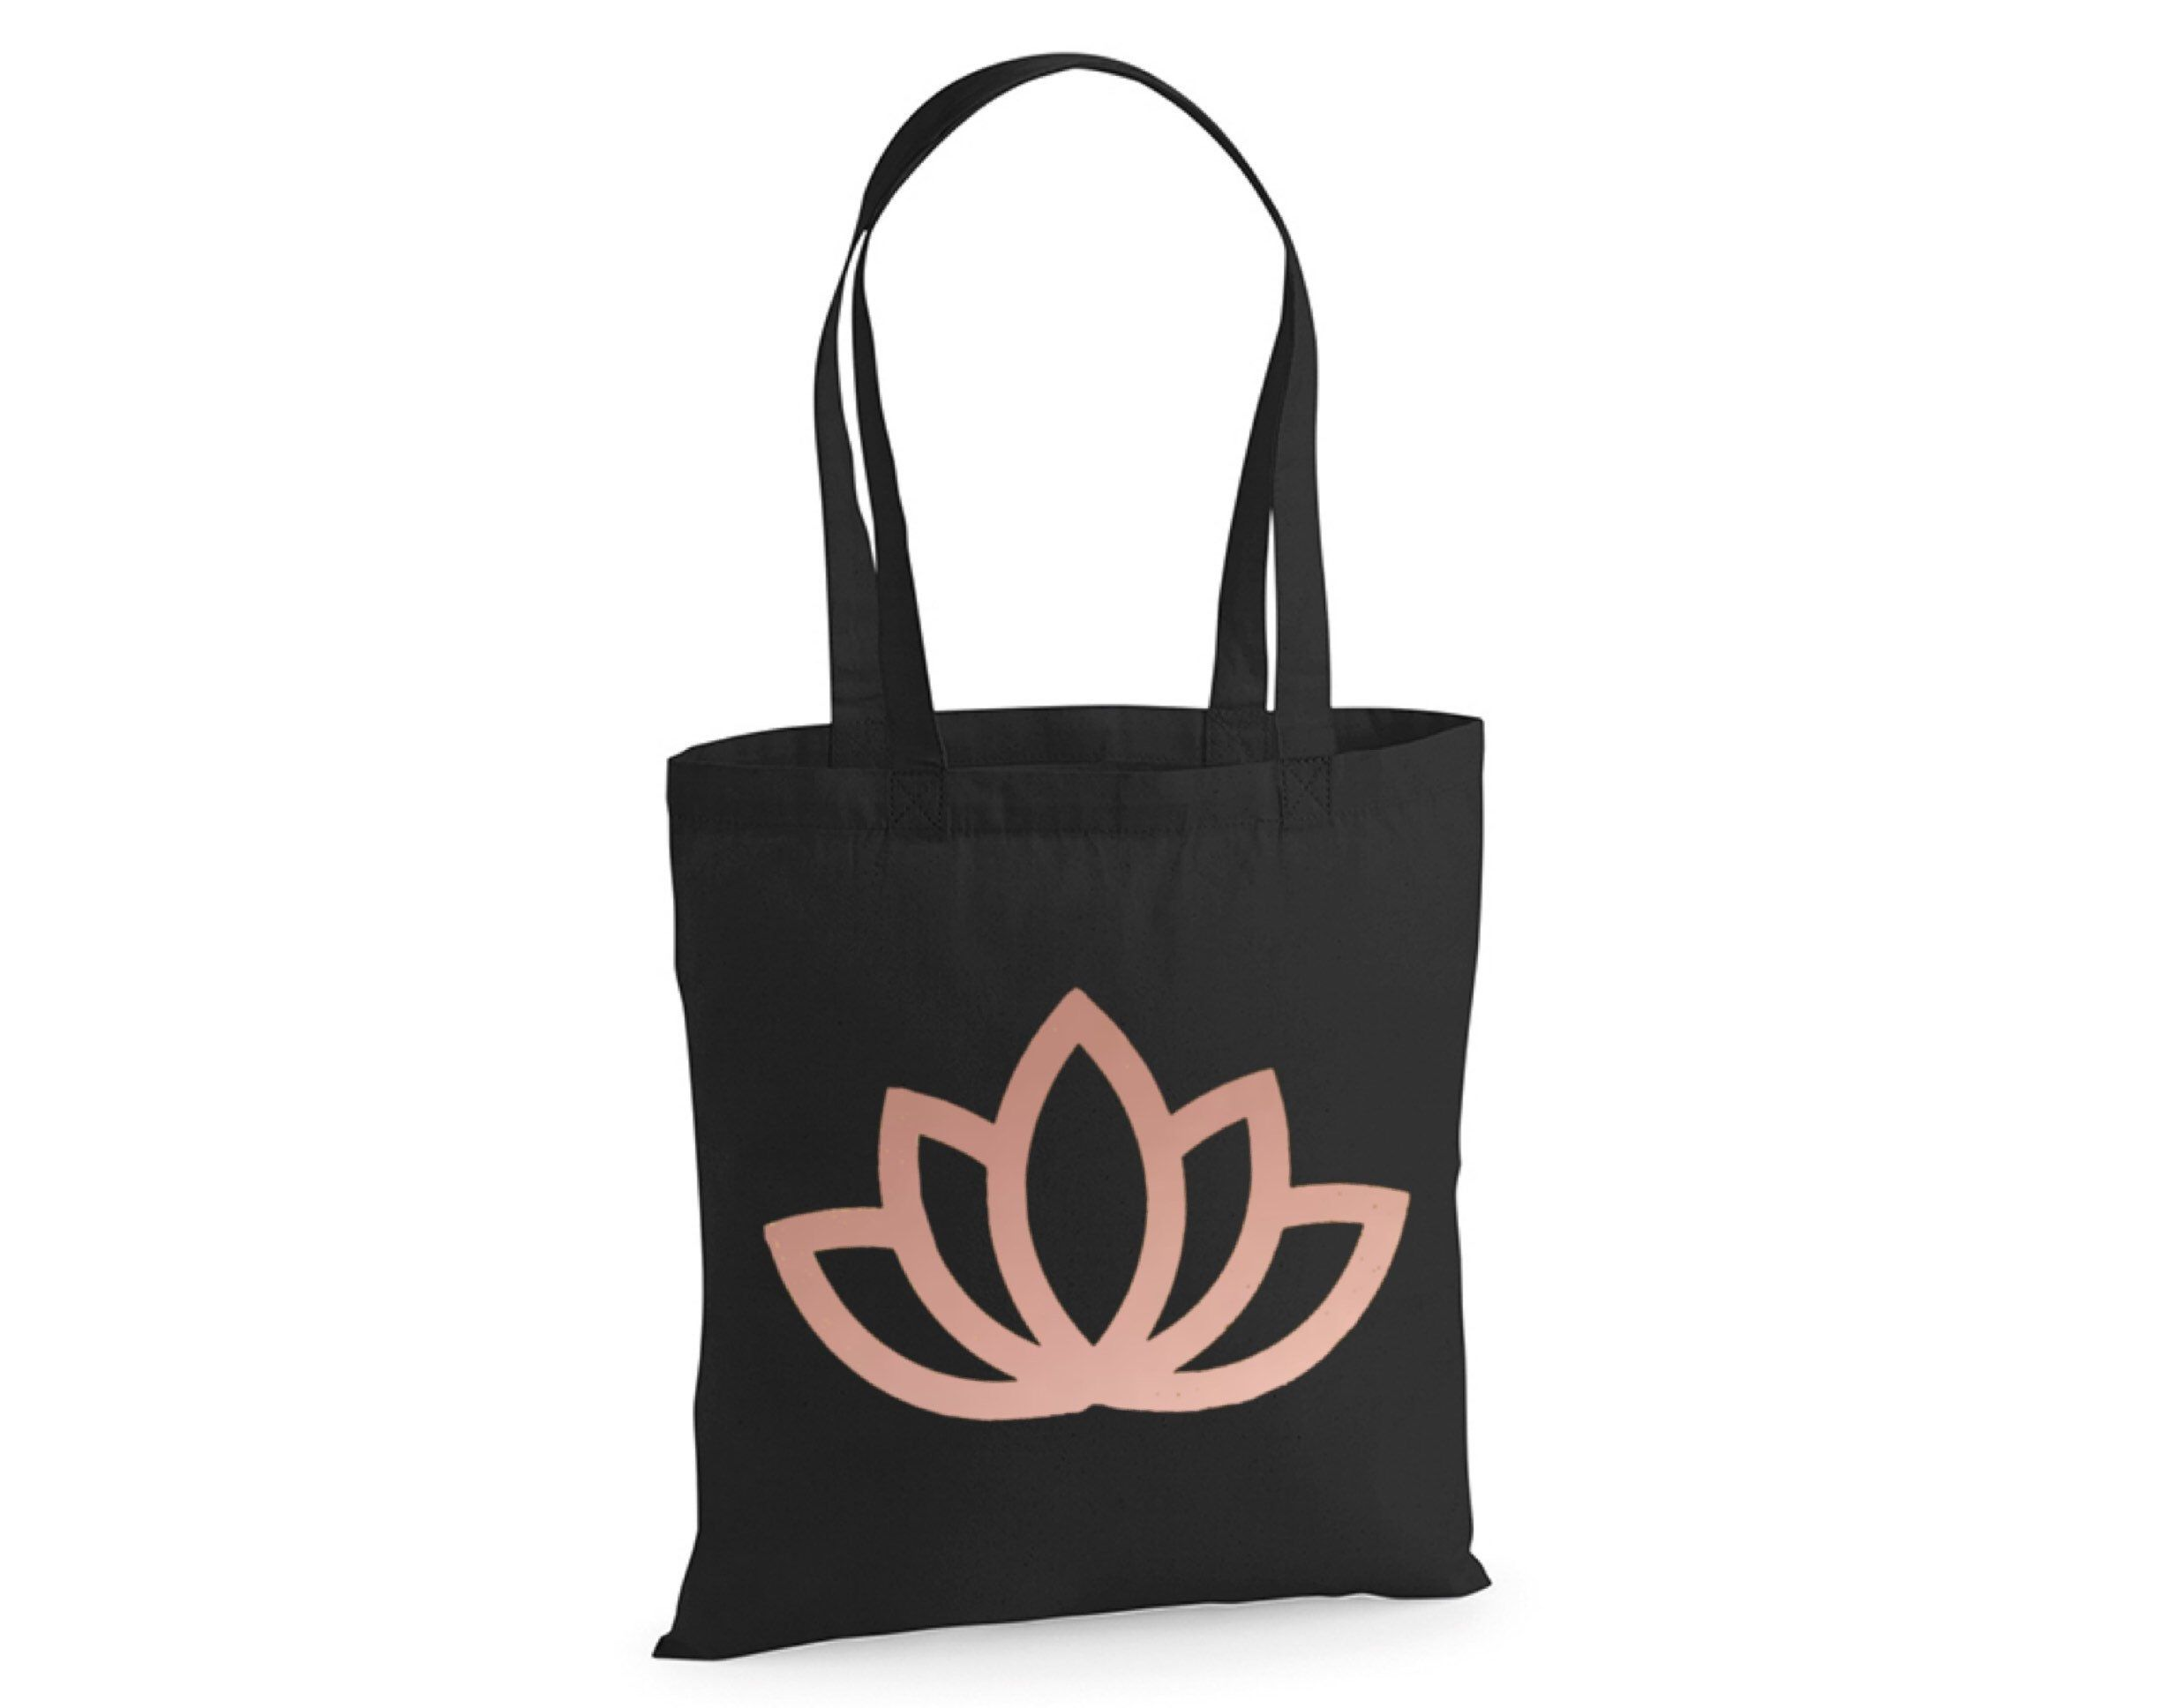 Lotus Flower Tote Bag Personalised Cotton Tote 140 Gsm Yoga